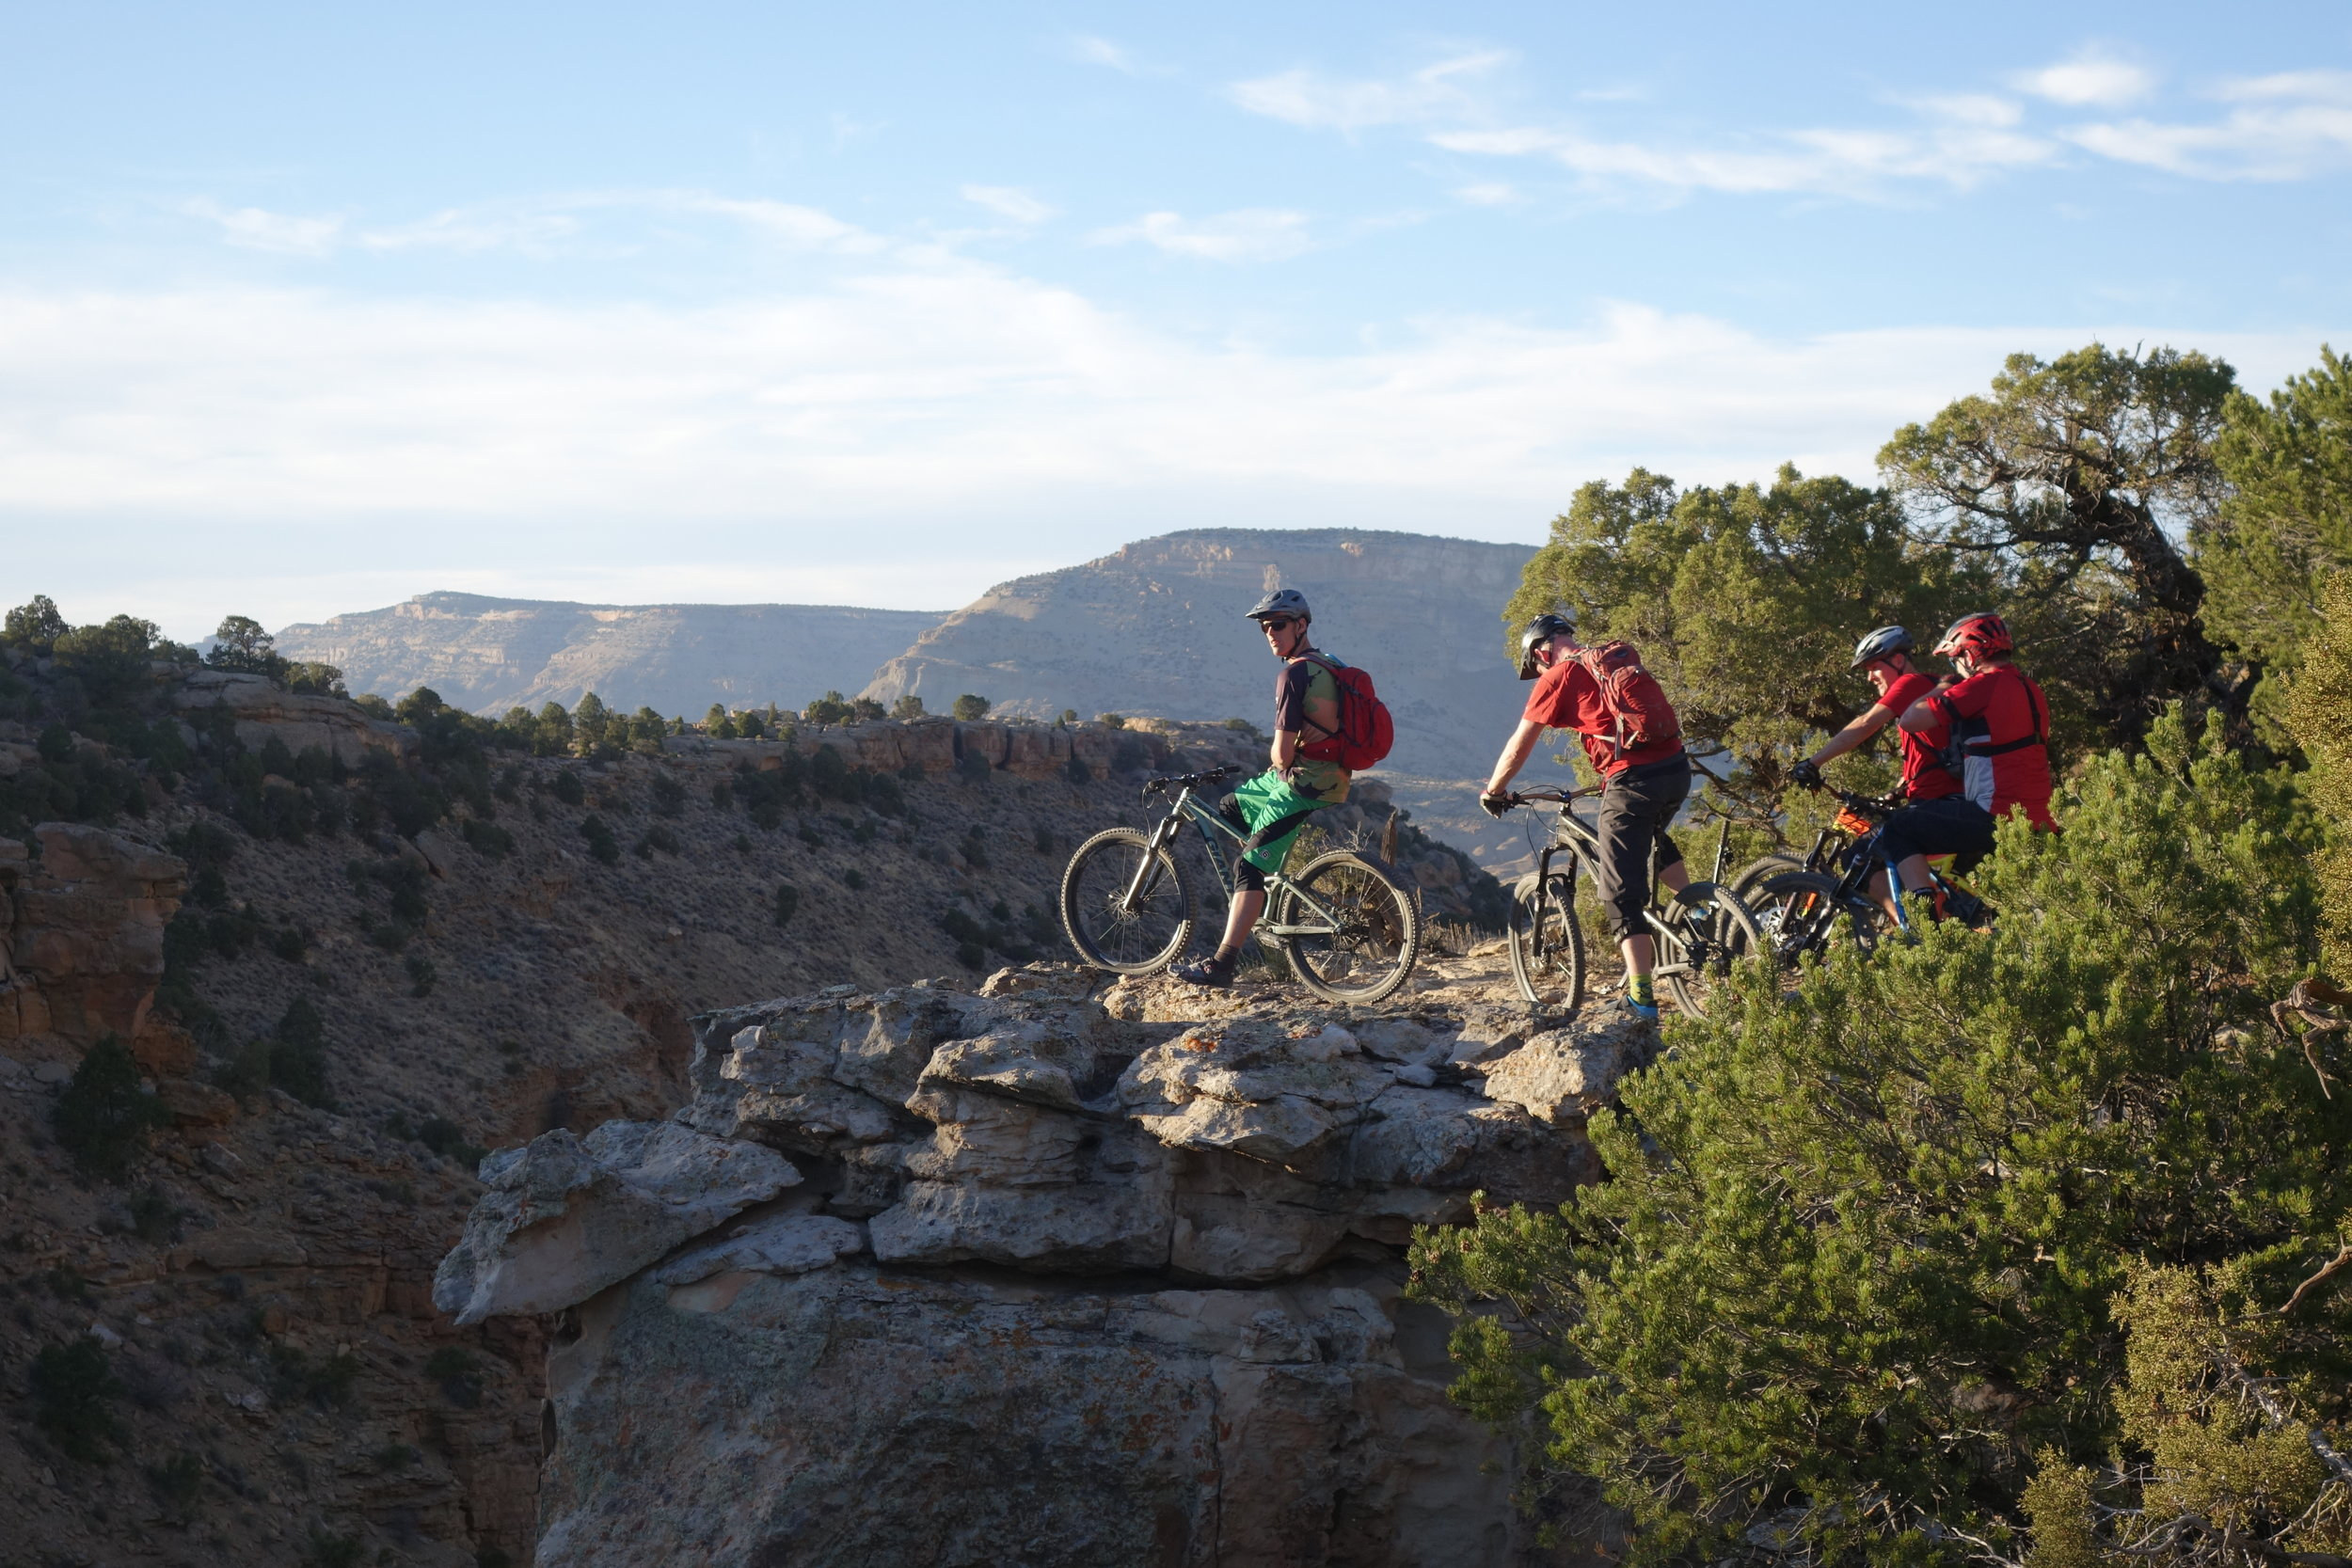 The trail comes very very close to the edge many times especially on the faster loose sections of descending trail. I was crapping myself that I would miss a bend in the trail and plummet to my death. The boys aren't just posing here. It's a fast sketchy right hand bend that catches the rider unawares. Tim climbs ladders for a living, he wasn't fazed at all. (No he's not a window cleaner, he rescues cats from trees and poses half naked in calendars for a job).